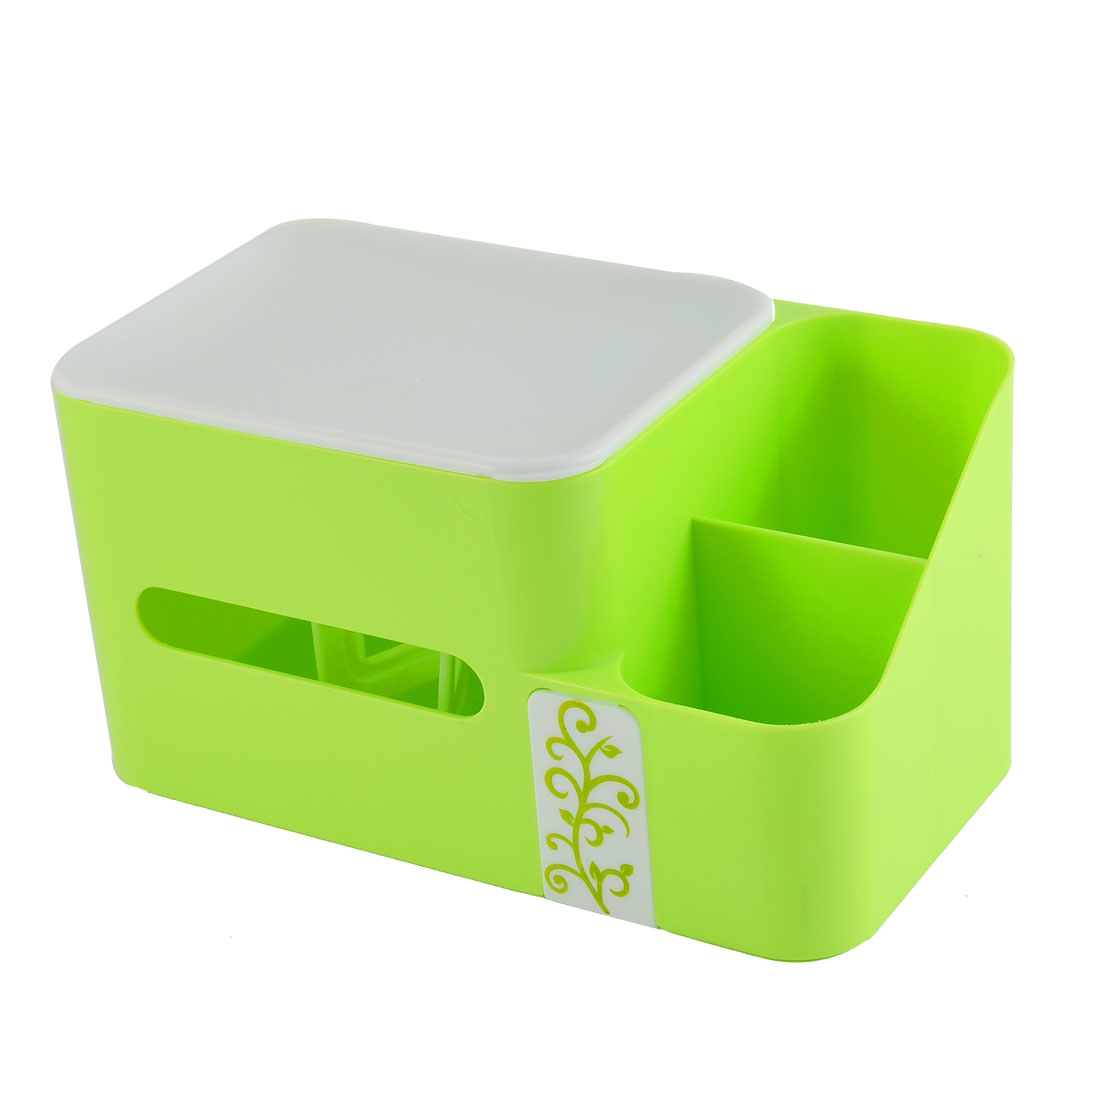 Home Plastic Rectangle Shaped Paper Napkin Tissue Box Container Holder Green